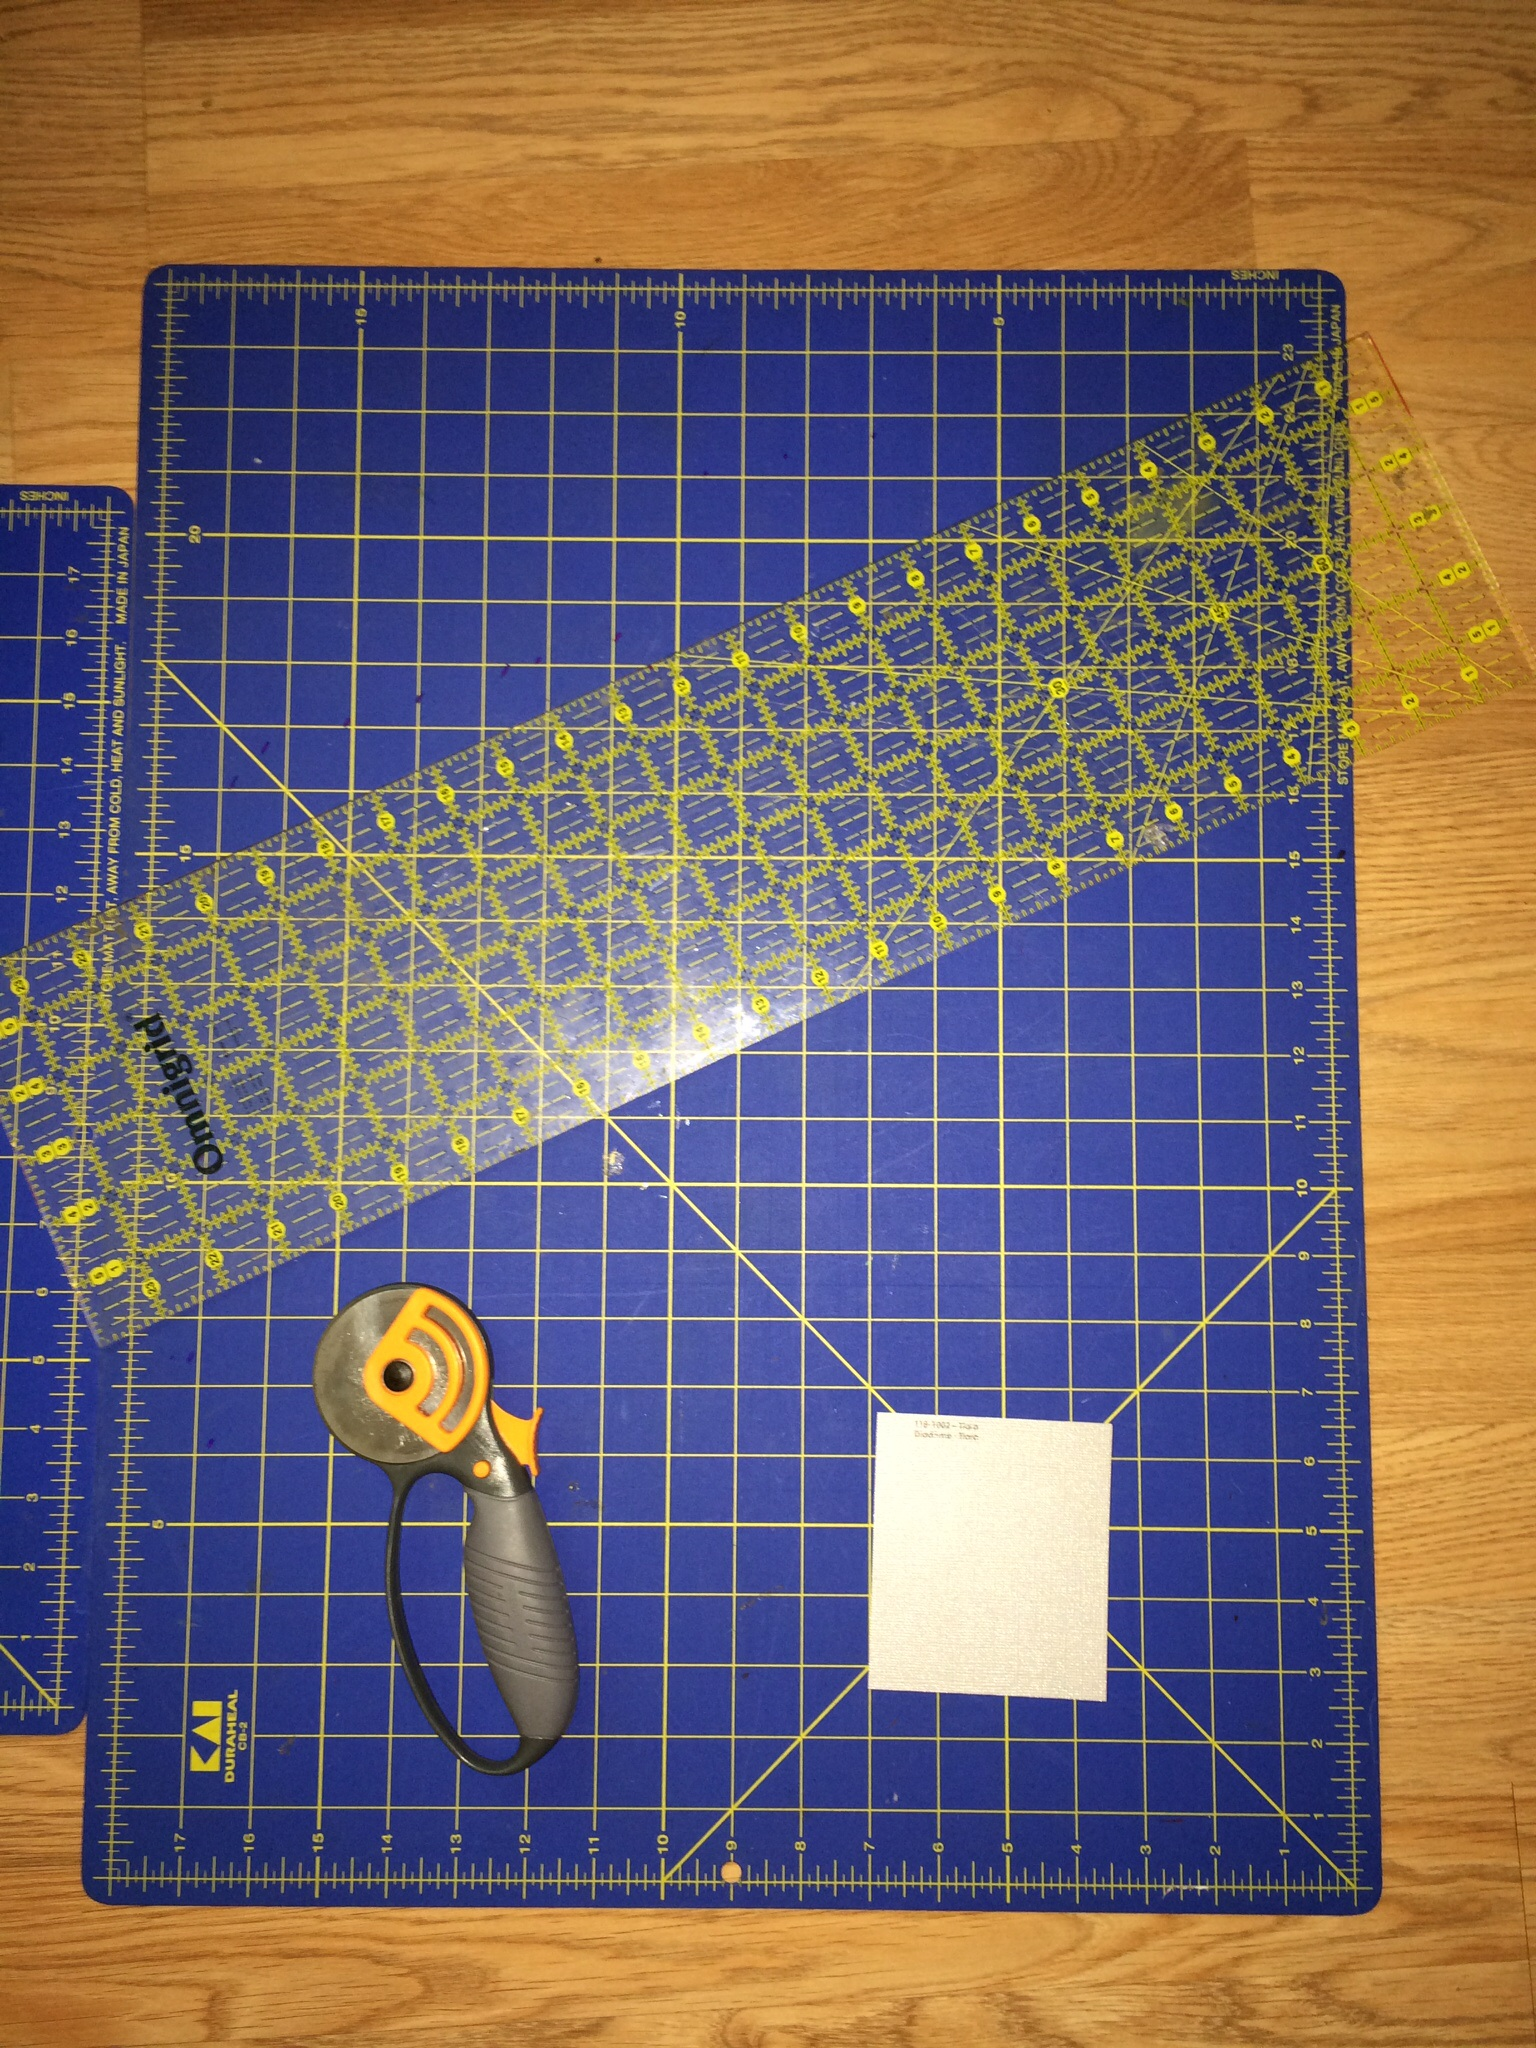 Tools used for the project, a rotary cutter, straight edge and a good cutting surface.